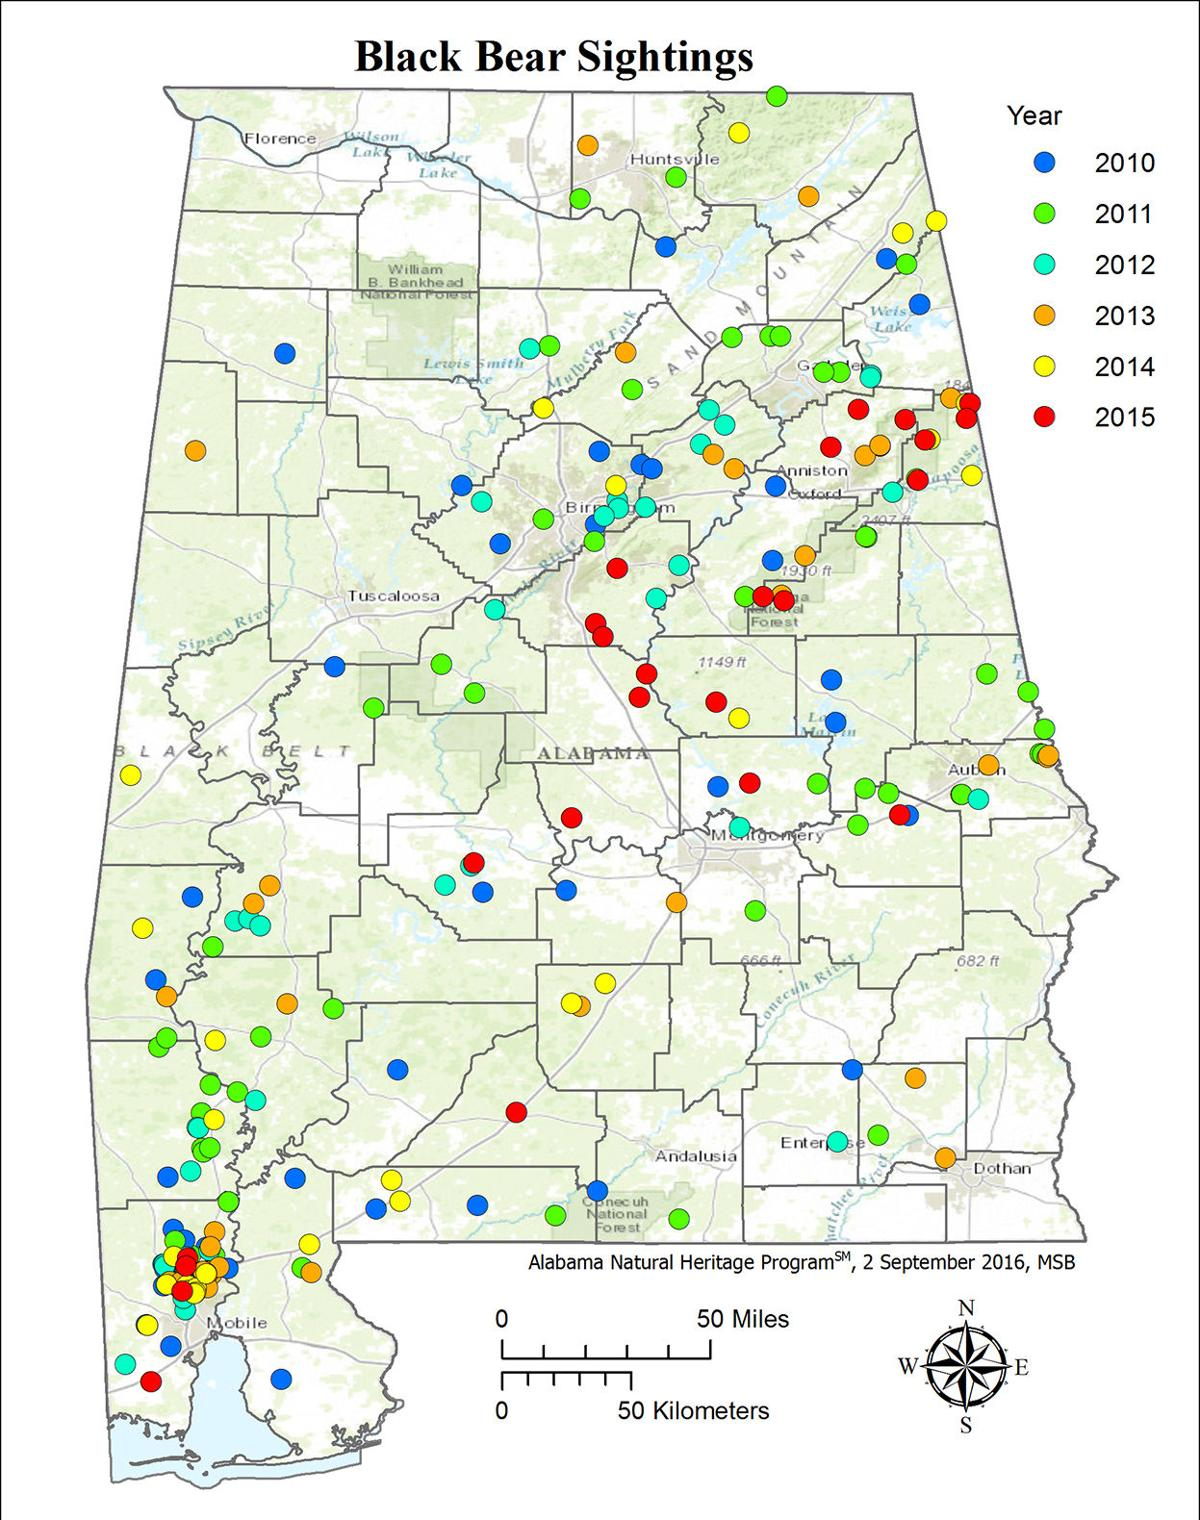 Forest experts, biologists: Black bears are in Alabama to